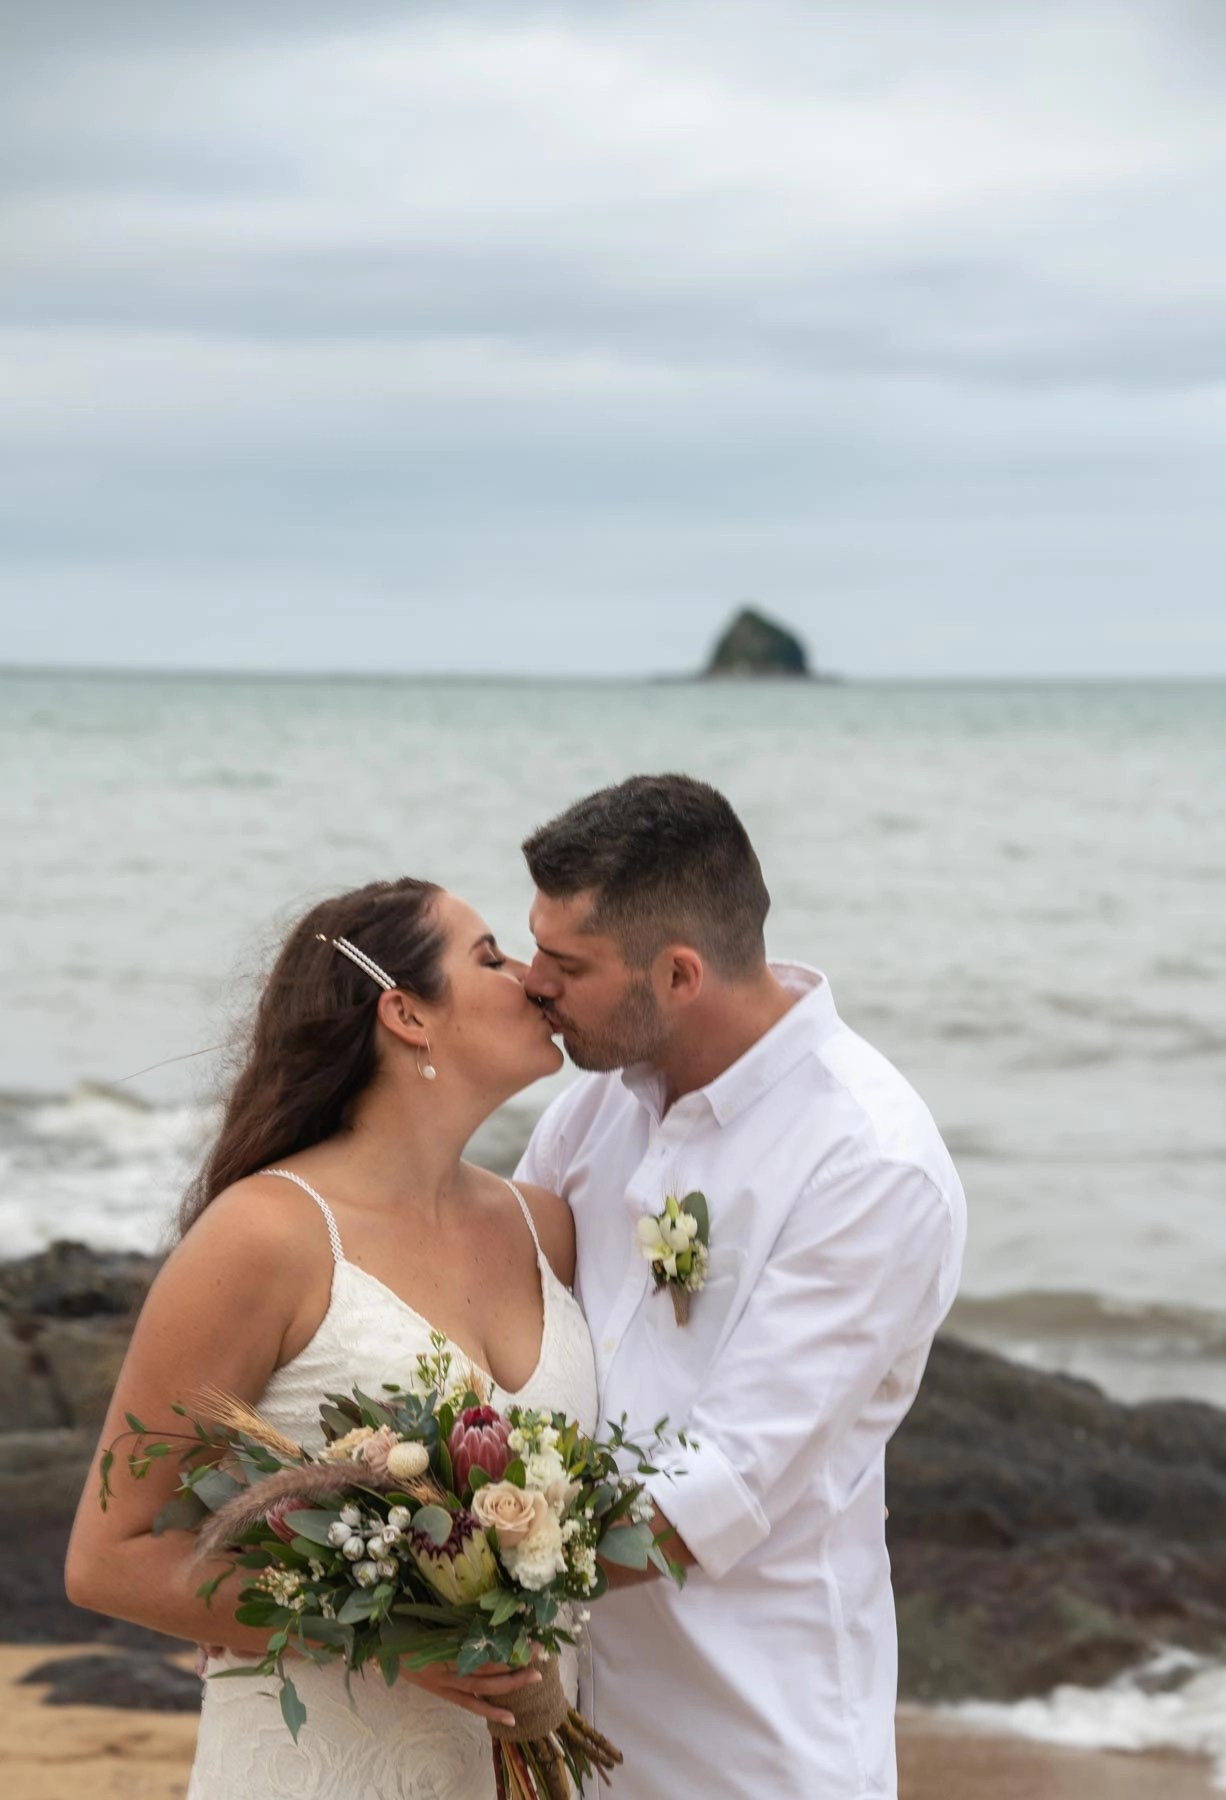 Bridal portrait on palm cove beach with flowers